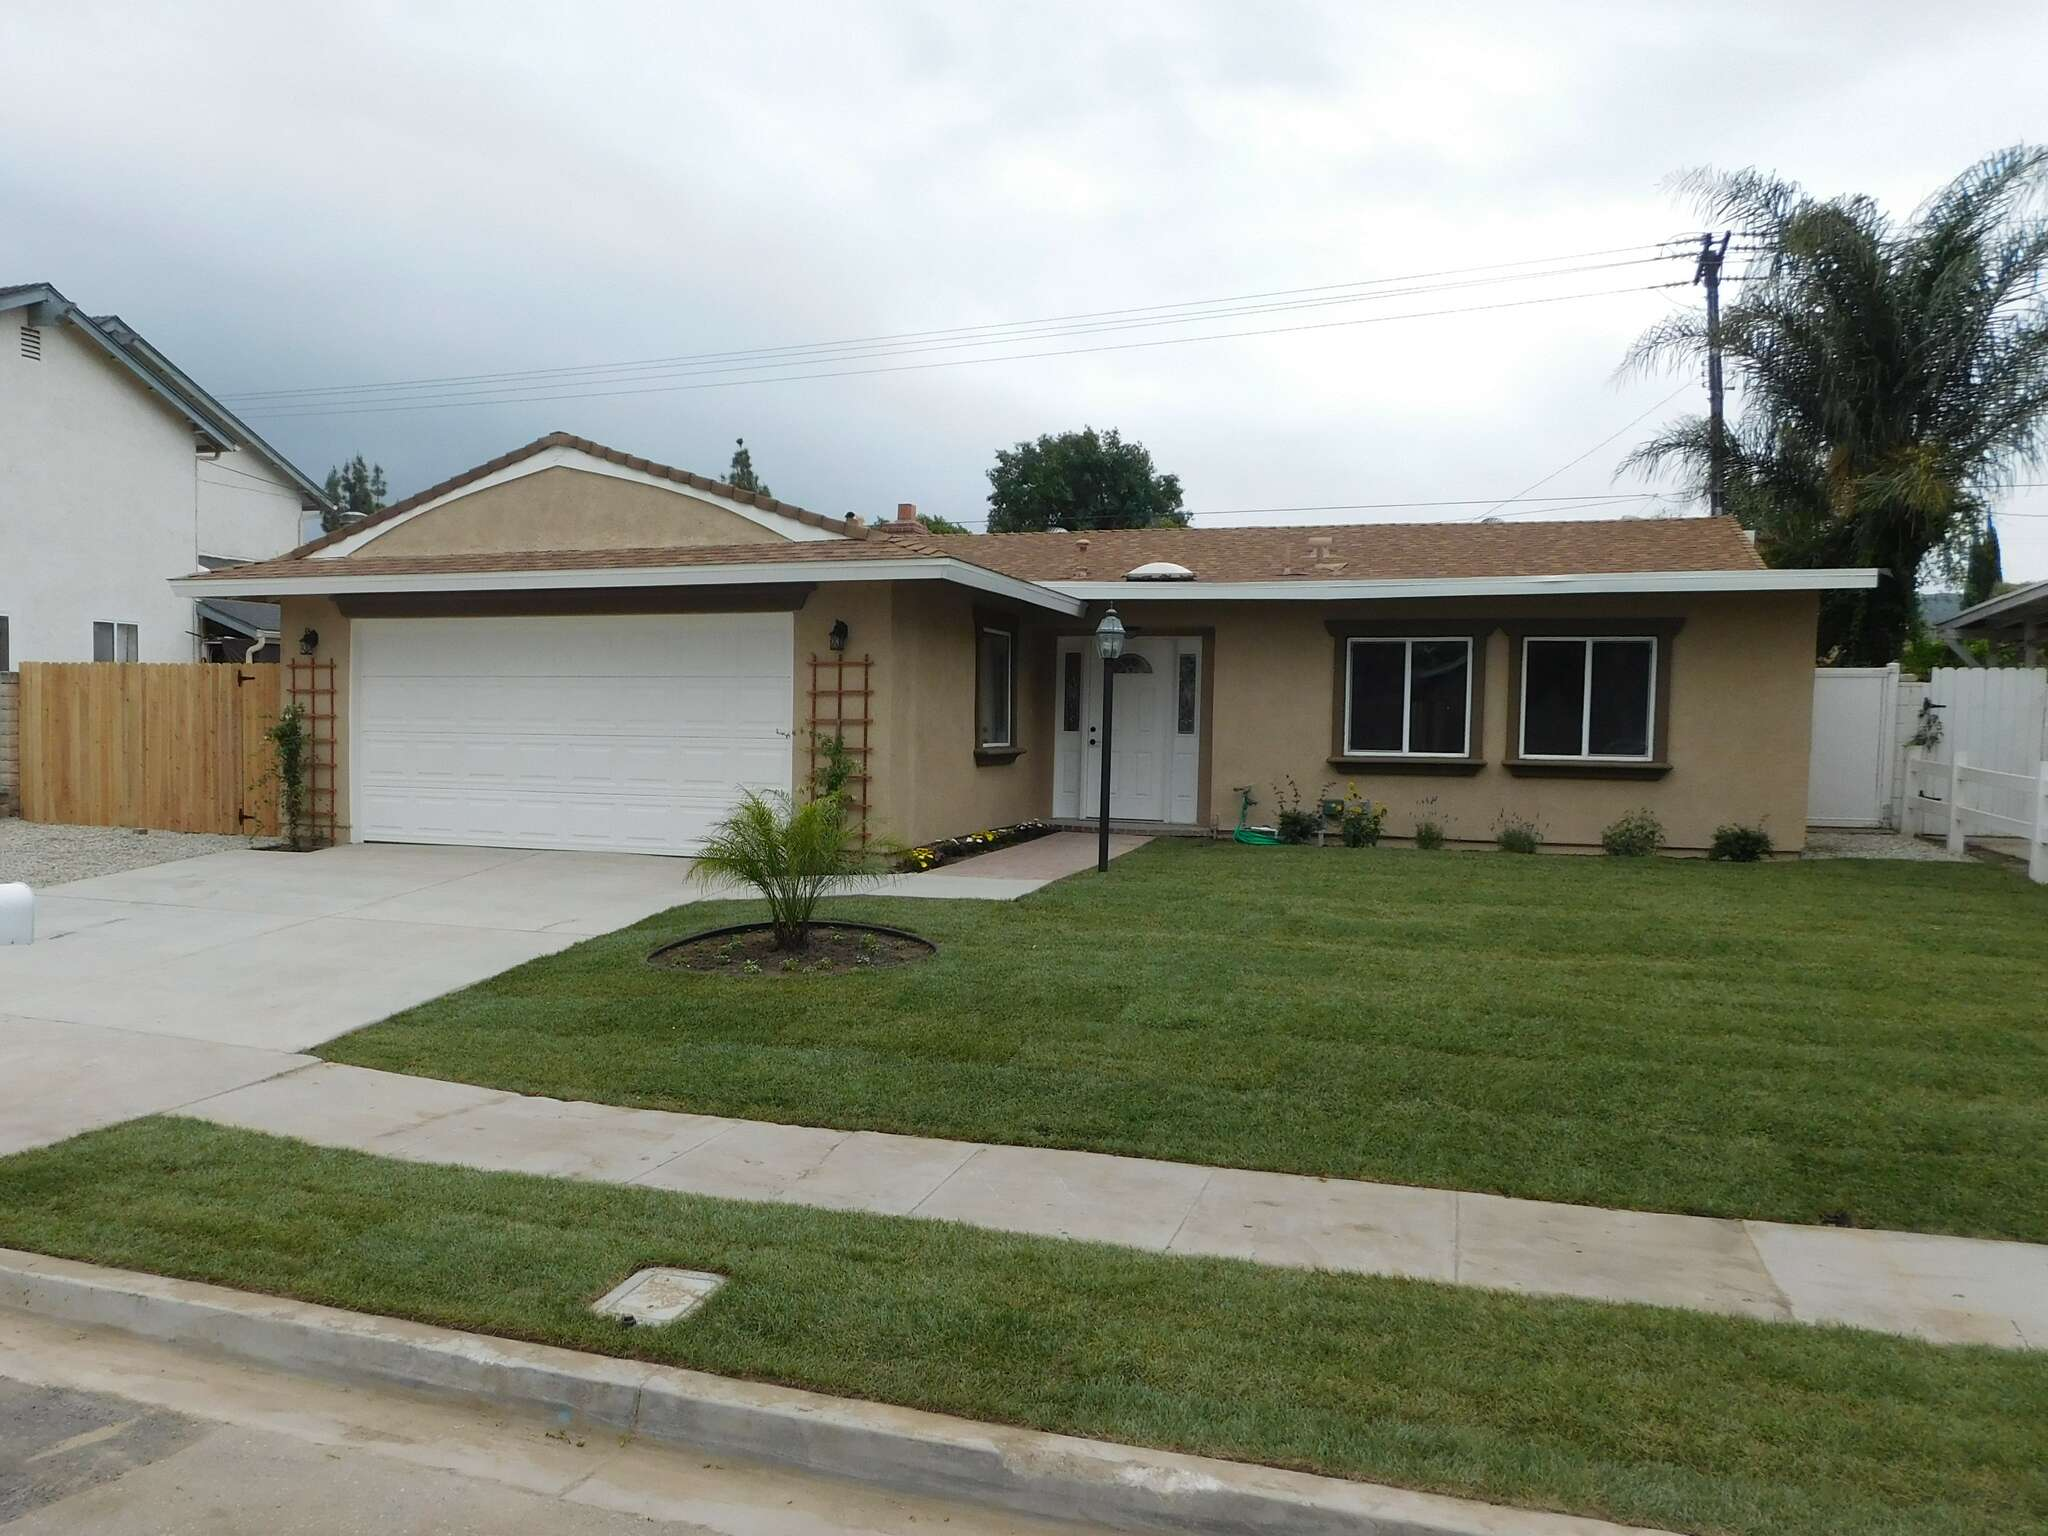 Single Family for Sale at 2306 Morley St Simi Valley, California 93065 United States